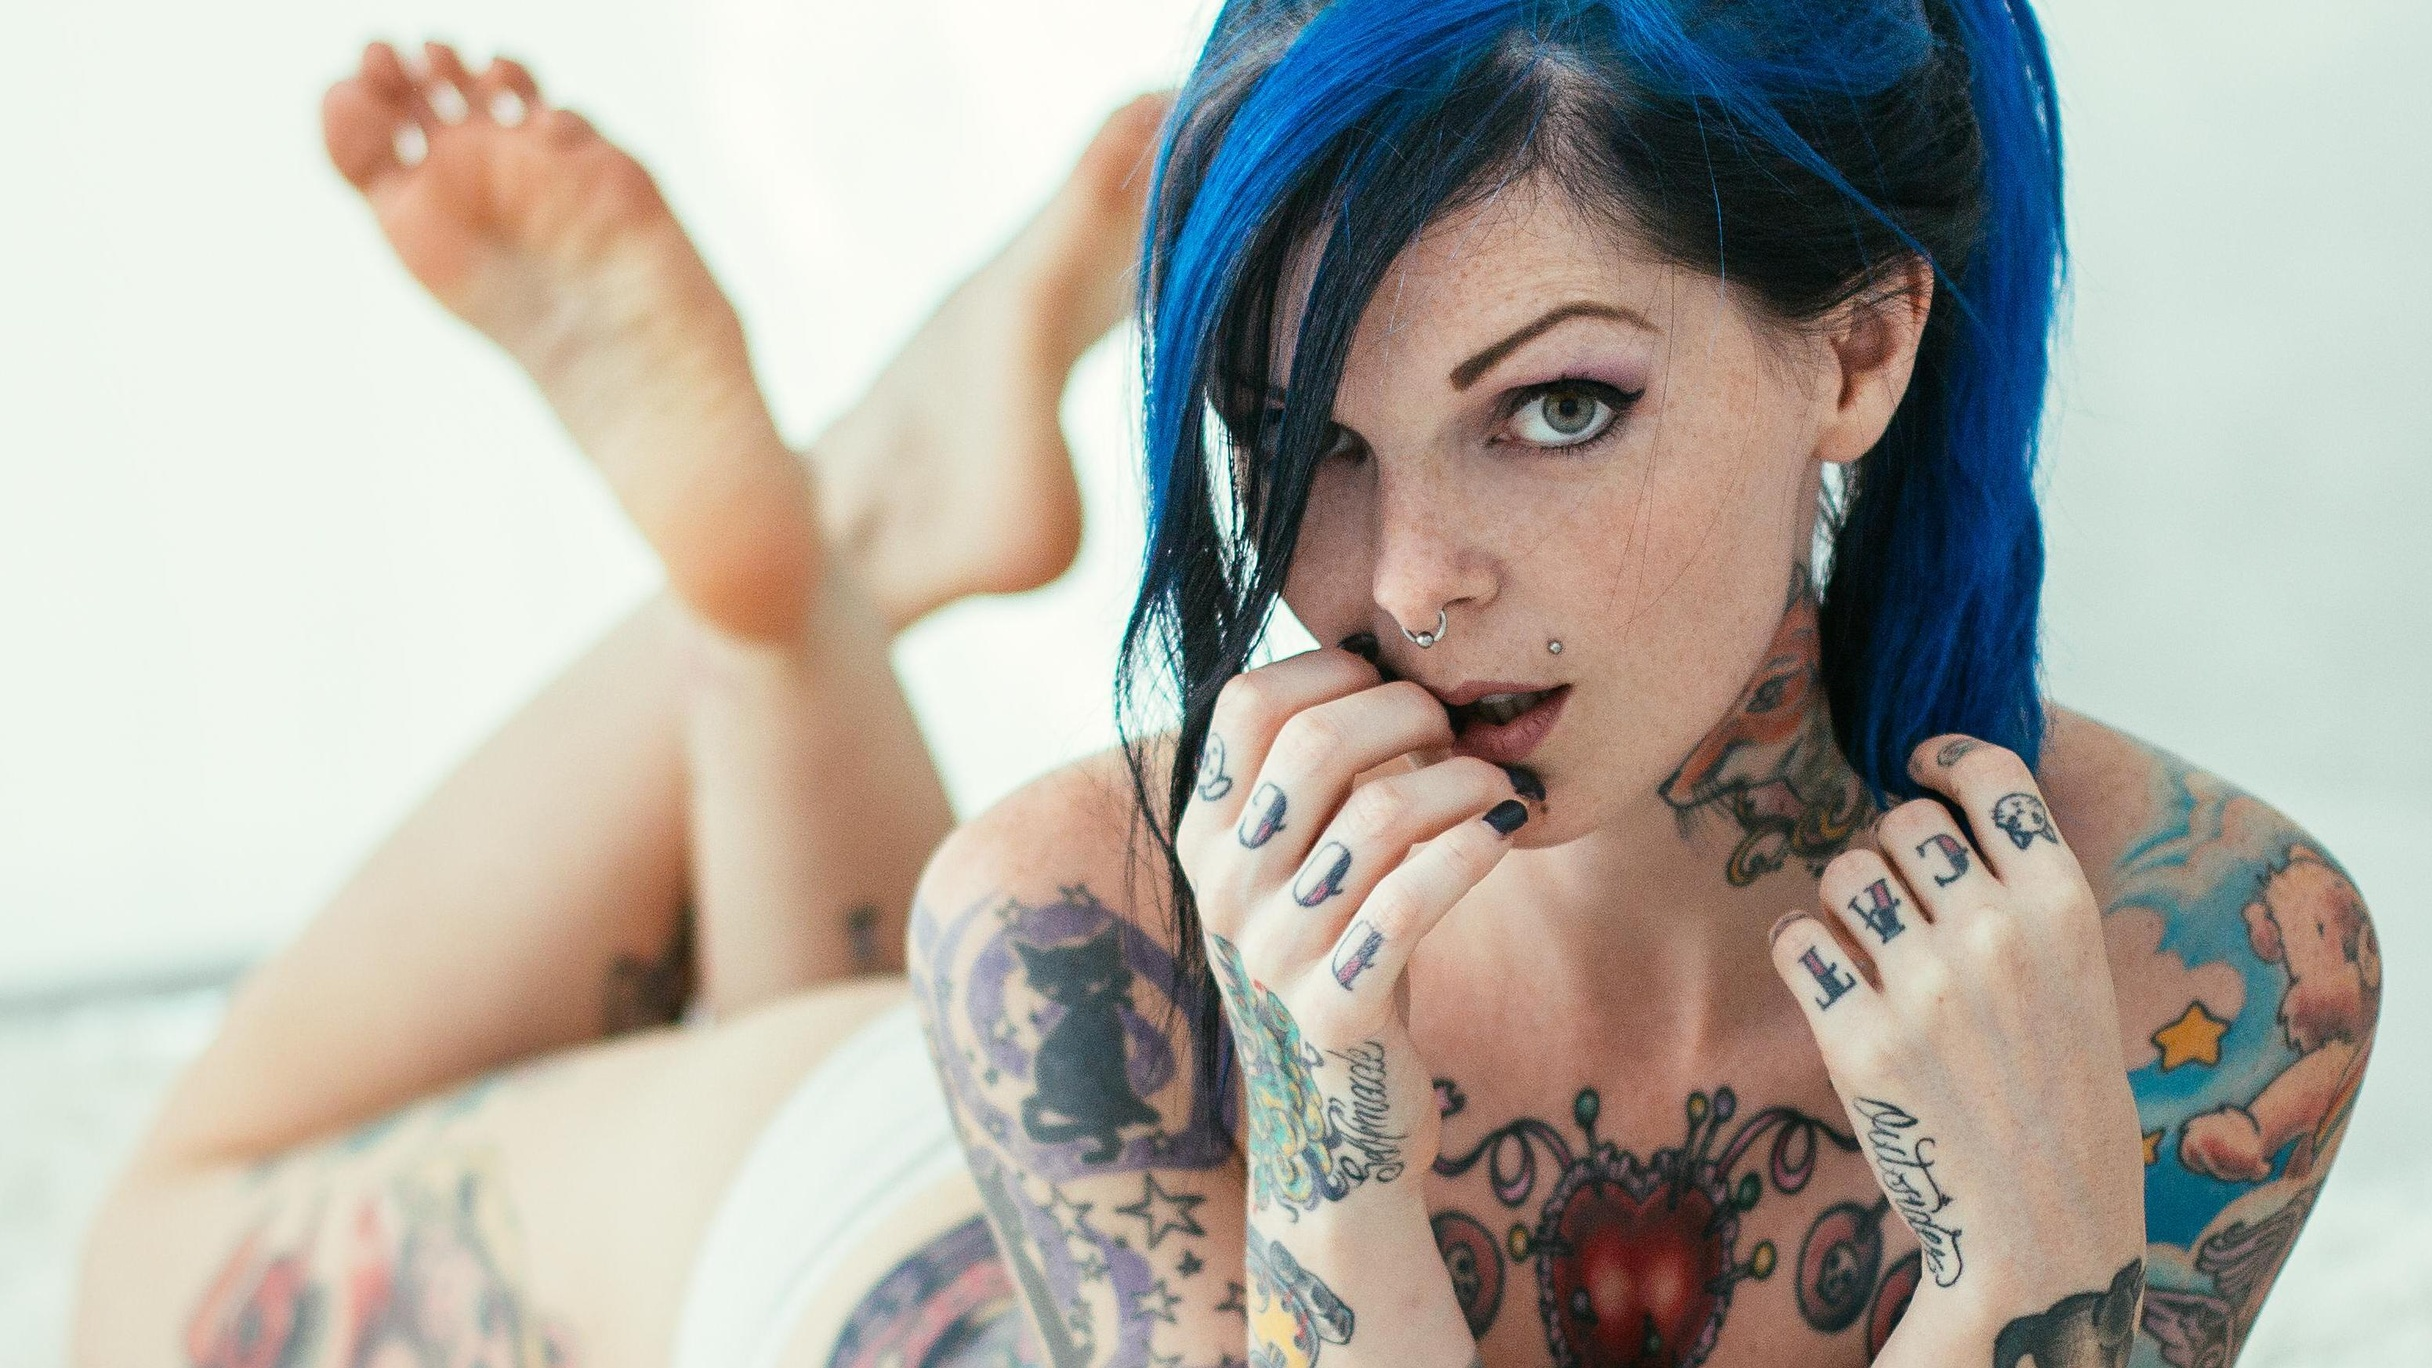 Riae Suicide  - White Oleand suicidegirls @riae love,gossip,perfection,siren,goddess